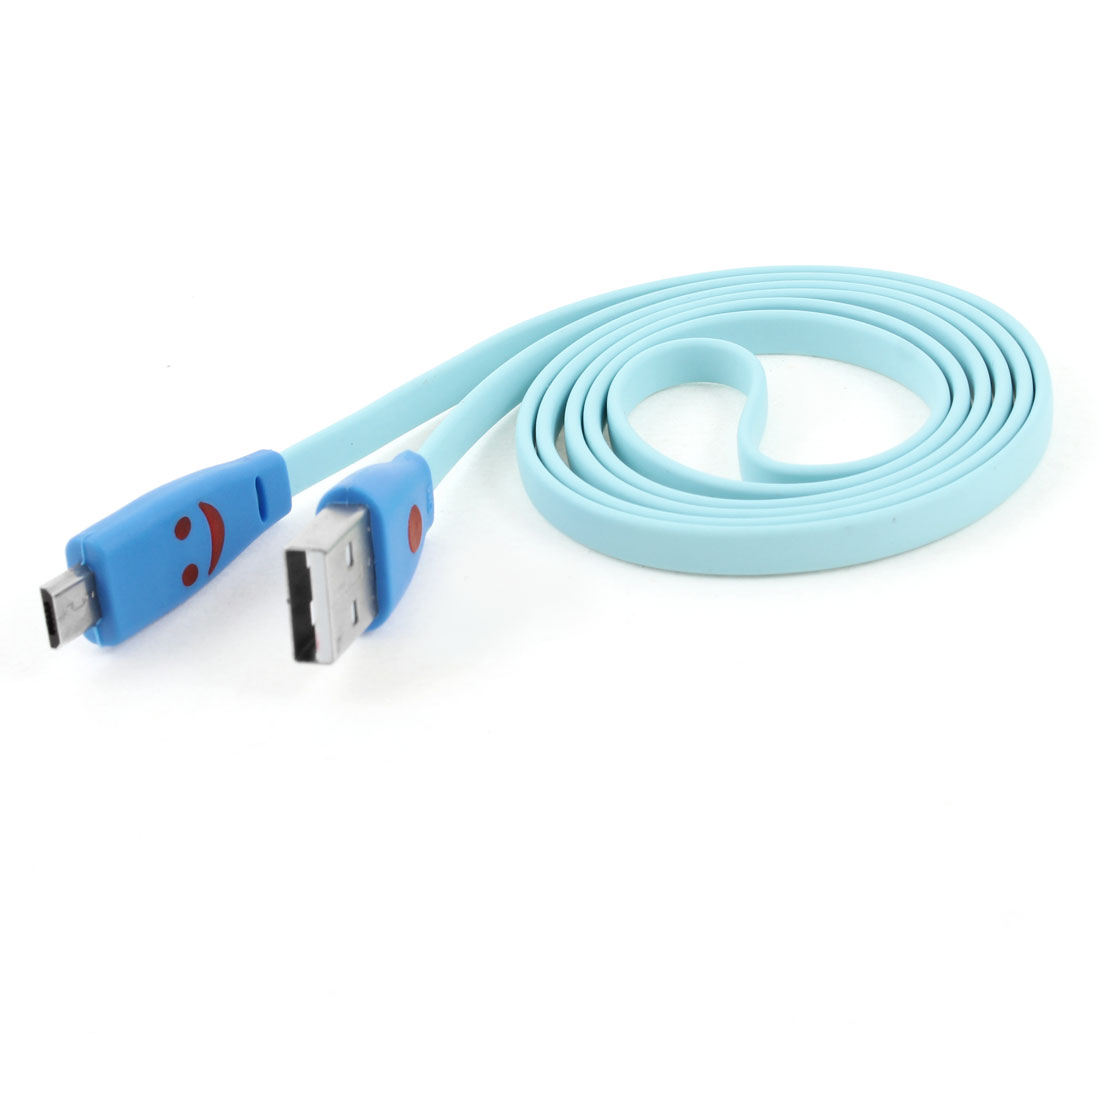 USB Type A to Micro 5 Pin Flashing Light Data Transfer Charger Cable Pale Blue